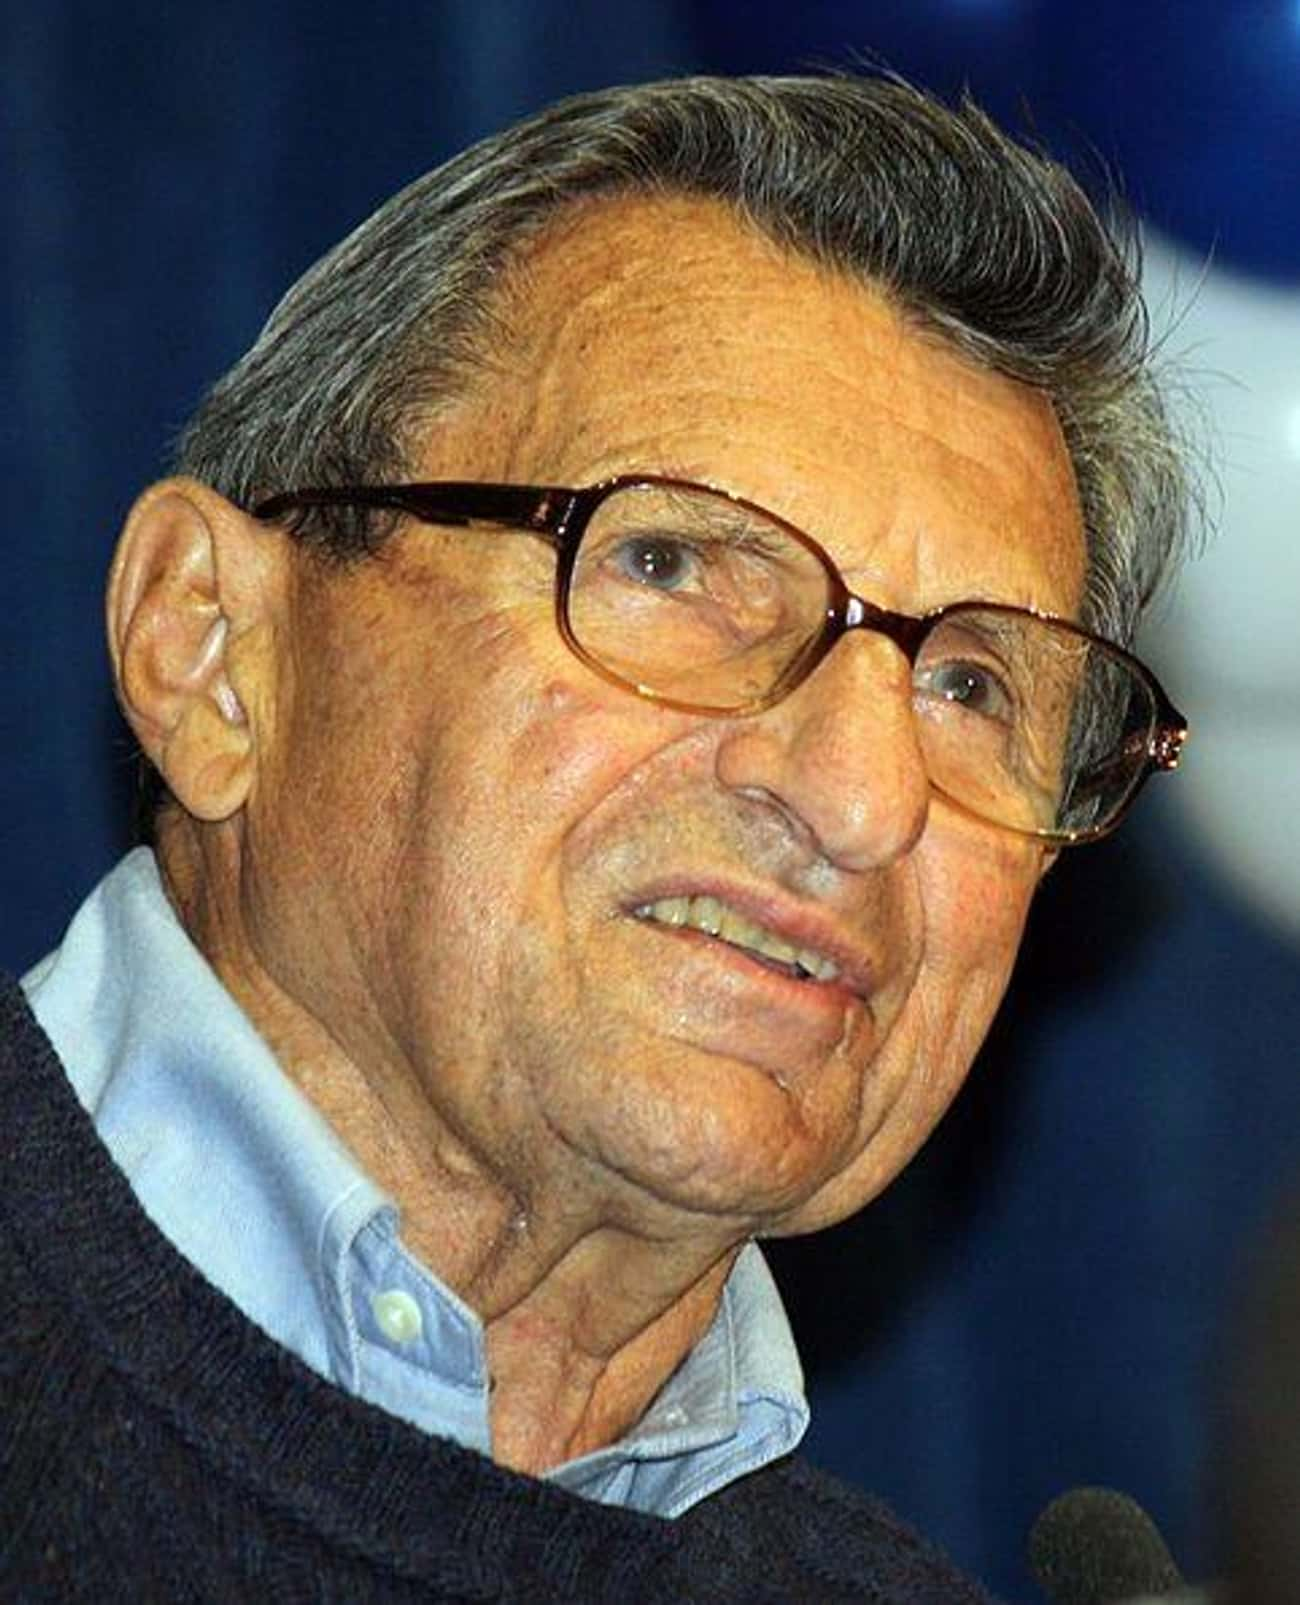 Paterno Claimed He'd Never is listed (or ranked) 2 on the list How Joe Paterno's Silence In The Face Of Abuse Led To His Stunning Fall From Grace